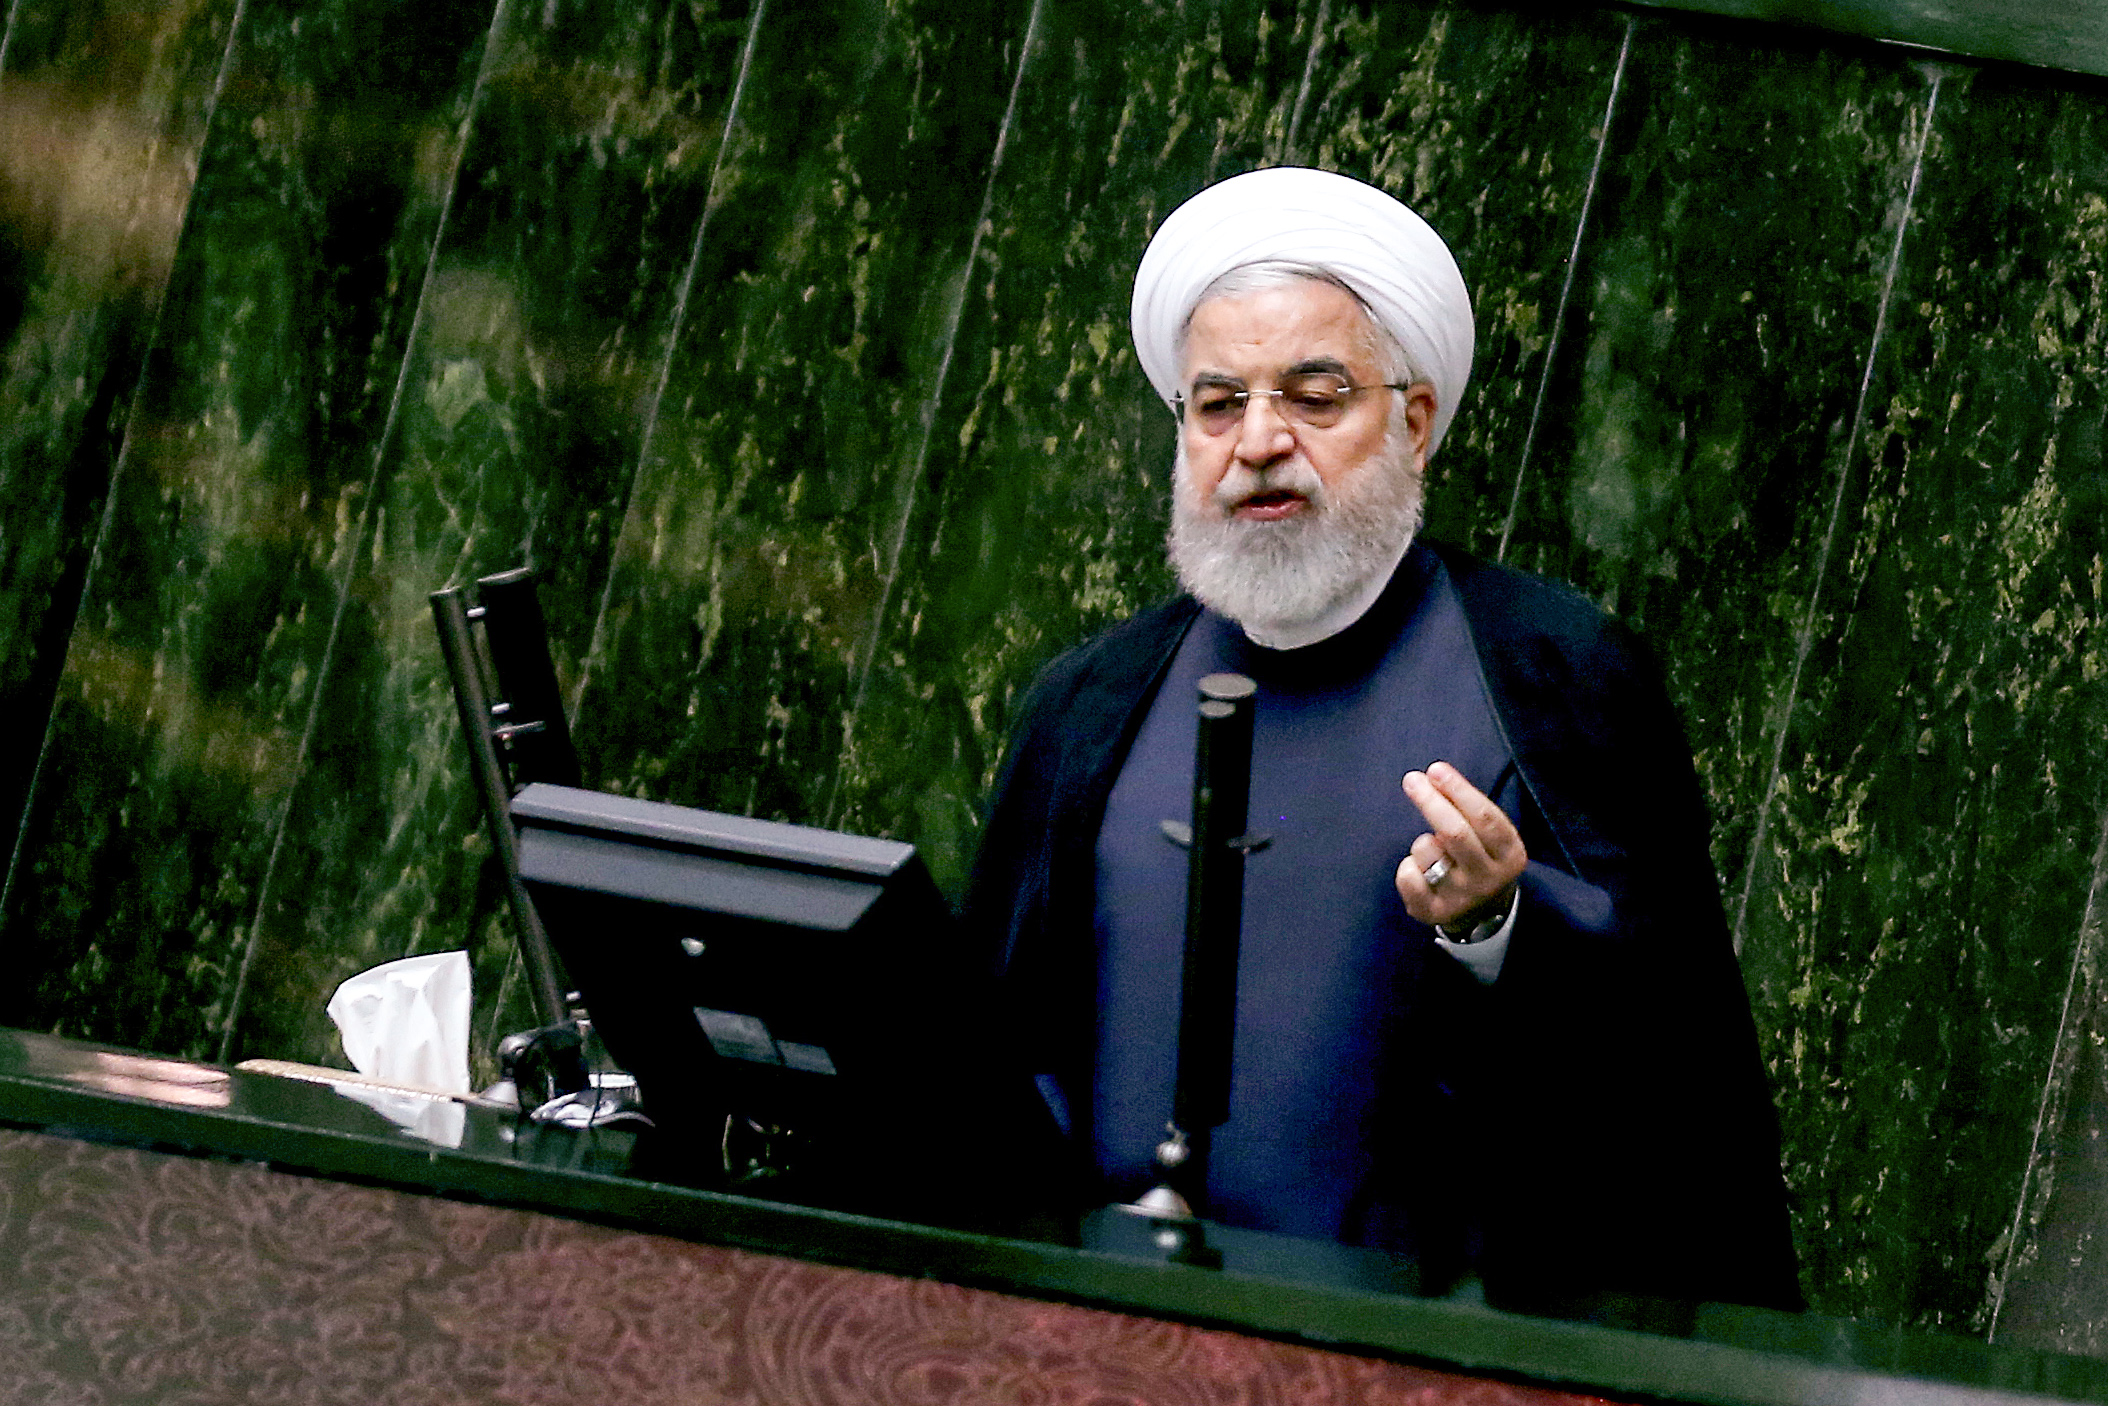 Iran's President Hassan Rouhani speaks at parliament in Tehran on Sept. 3, 2019. Rouhani ruled out holding any bilateral talks with the United States, and added that Iran was ready to further reduce its commitments to a landmark 2015 nuclear deal  in the coming days  if negotiations yielded no results.